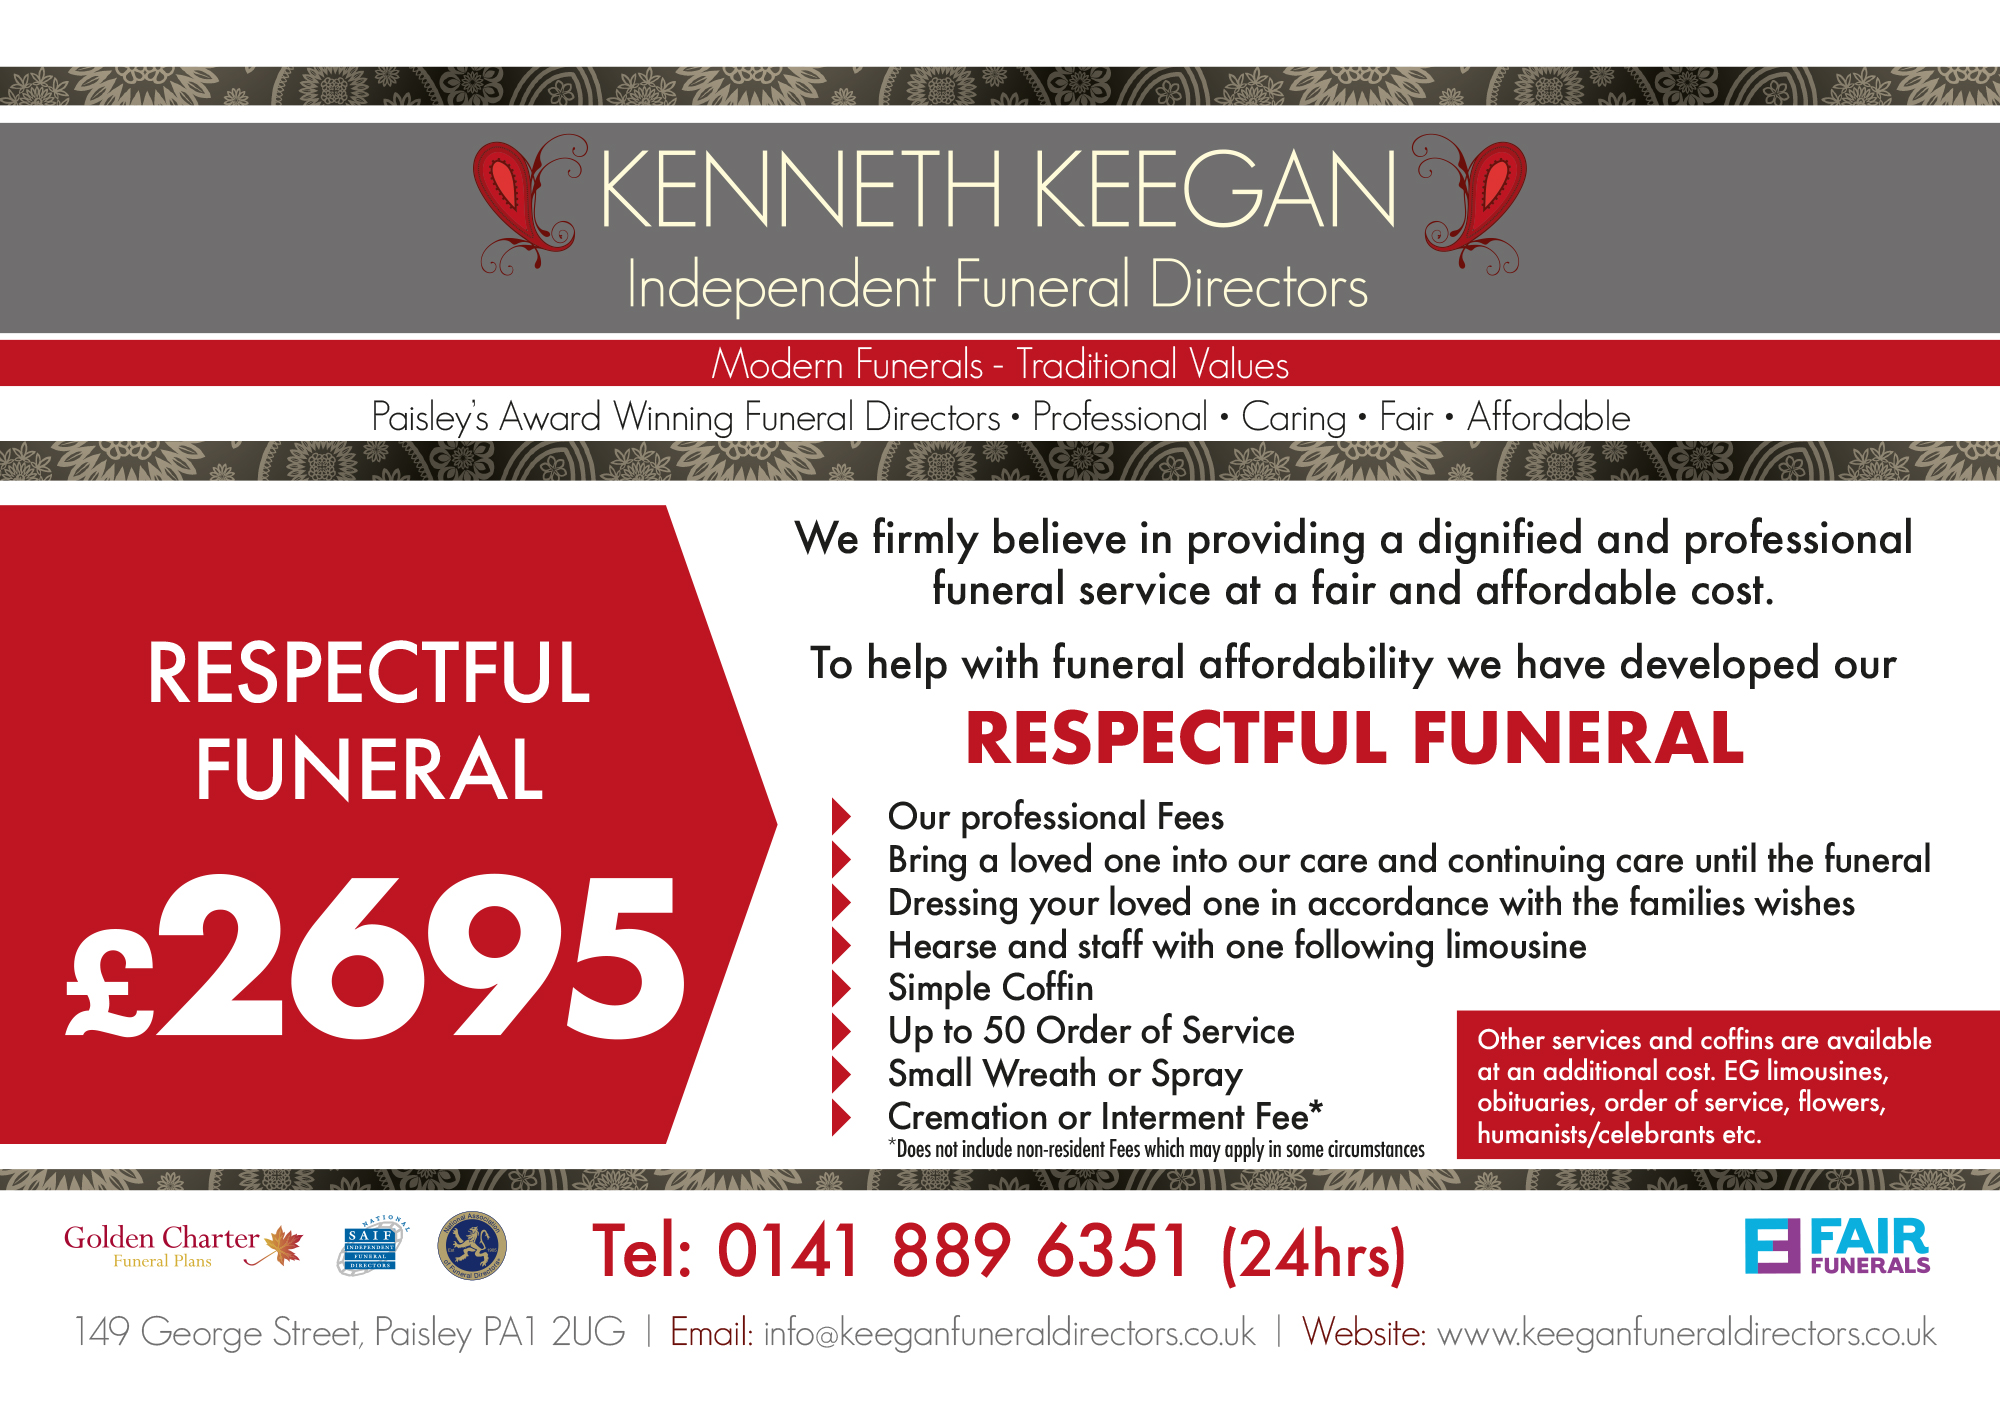 Kenneth-Keegan-Respectful-Funeral-Paisley-A4L-31-05-18